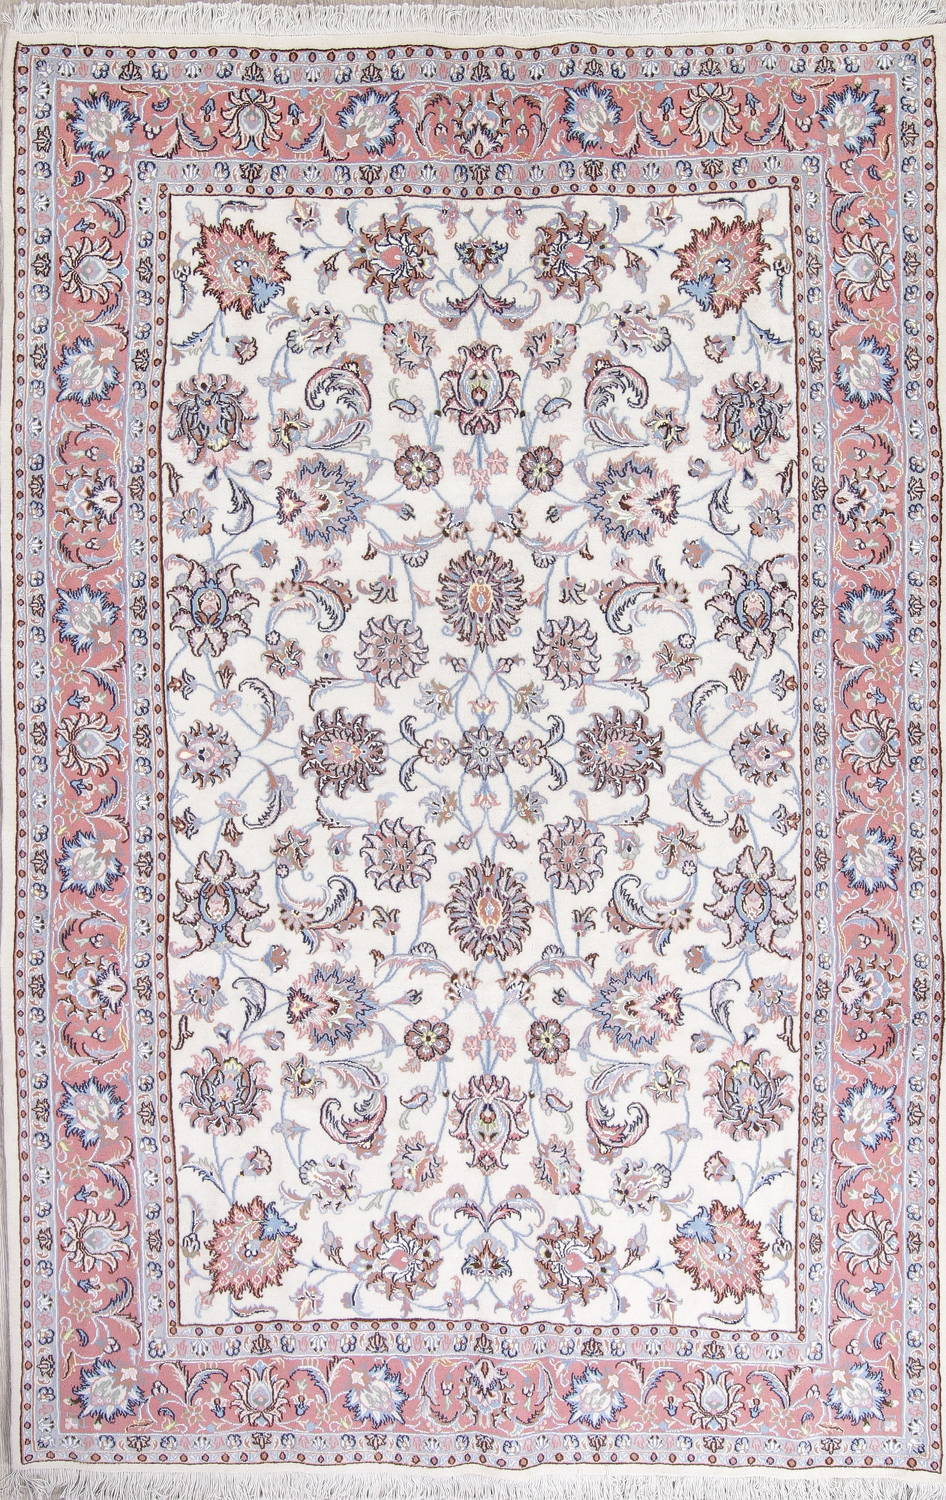 Wool Silk Fl White Tabriz Persian Hand Knotted 6x10 Area Rug